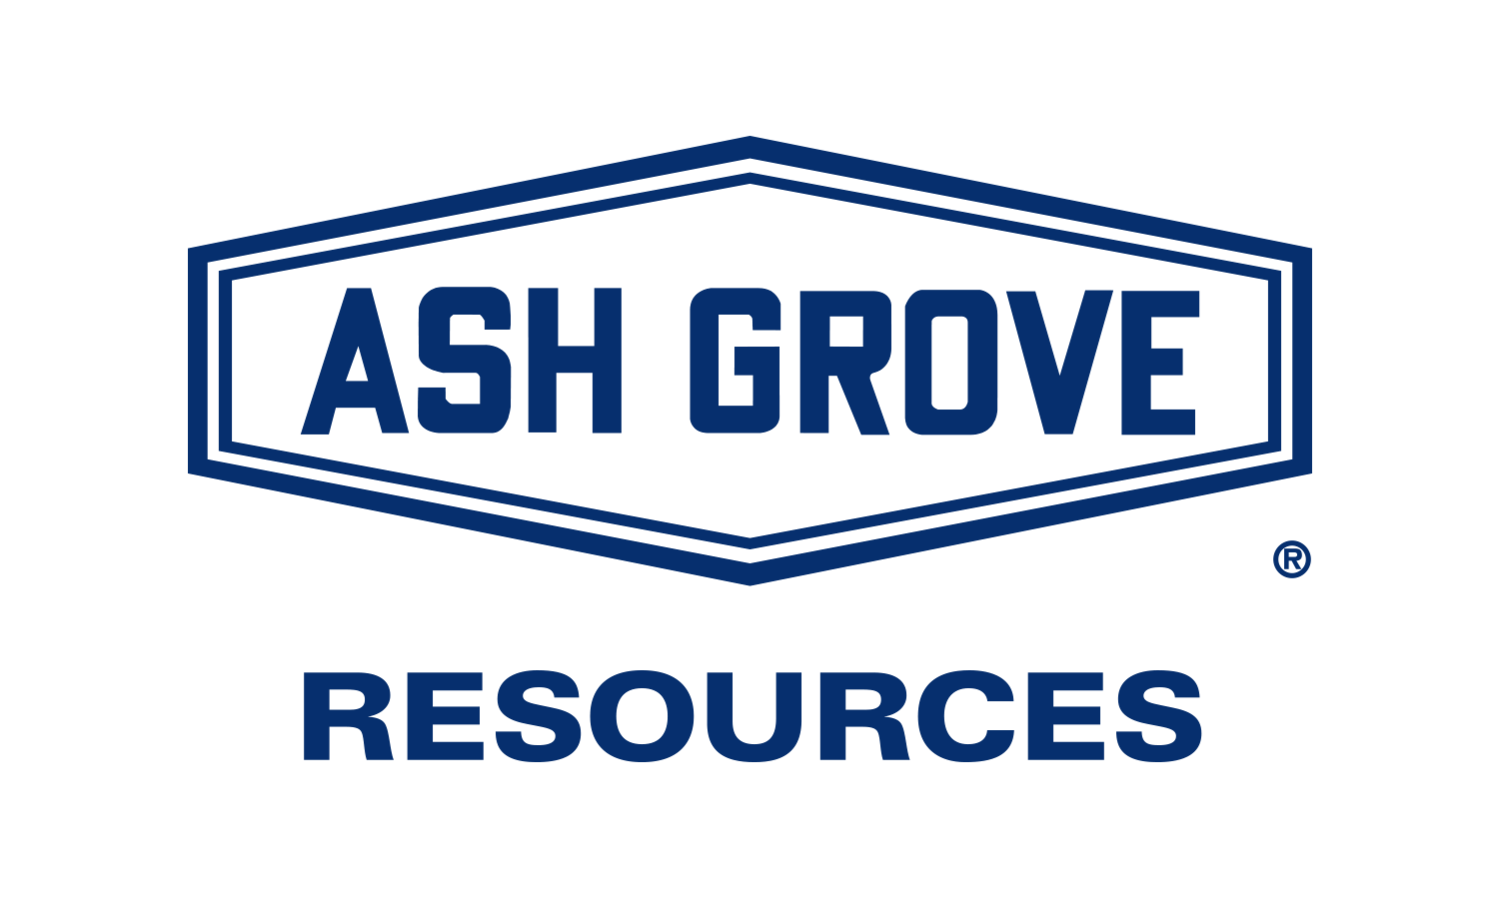 Ash Grove Resources